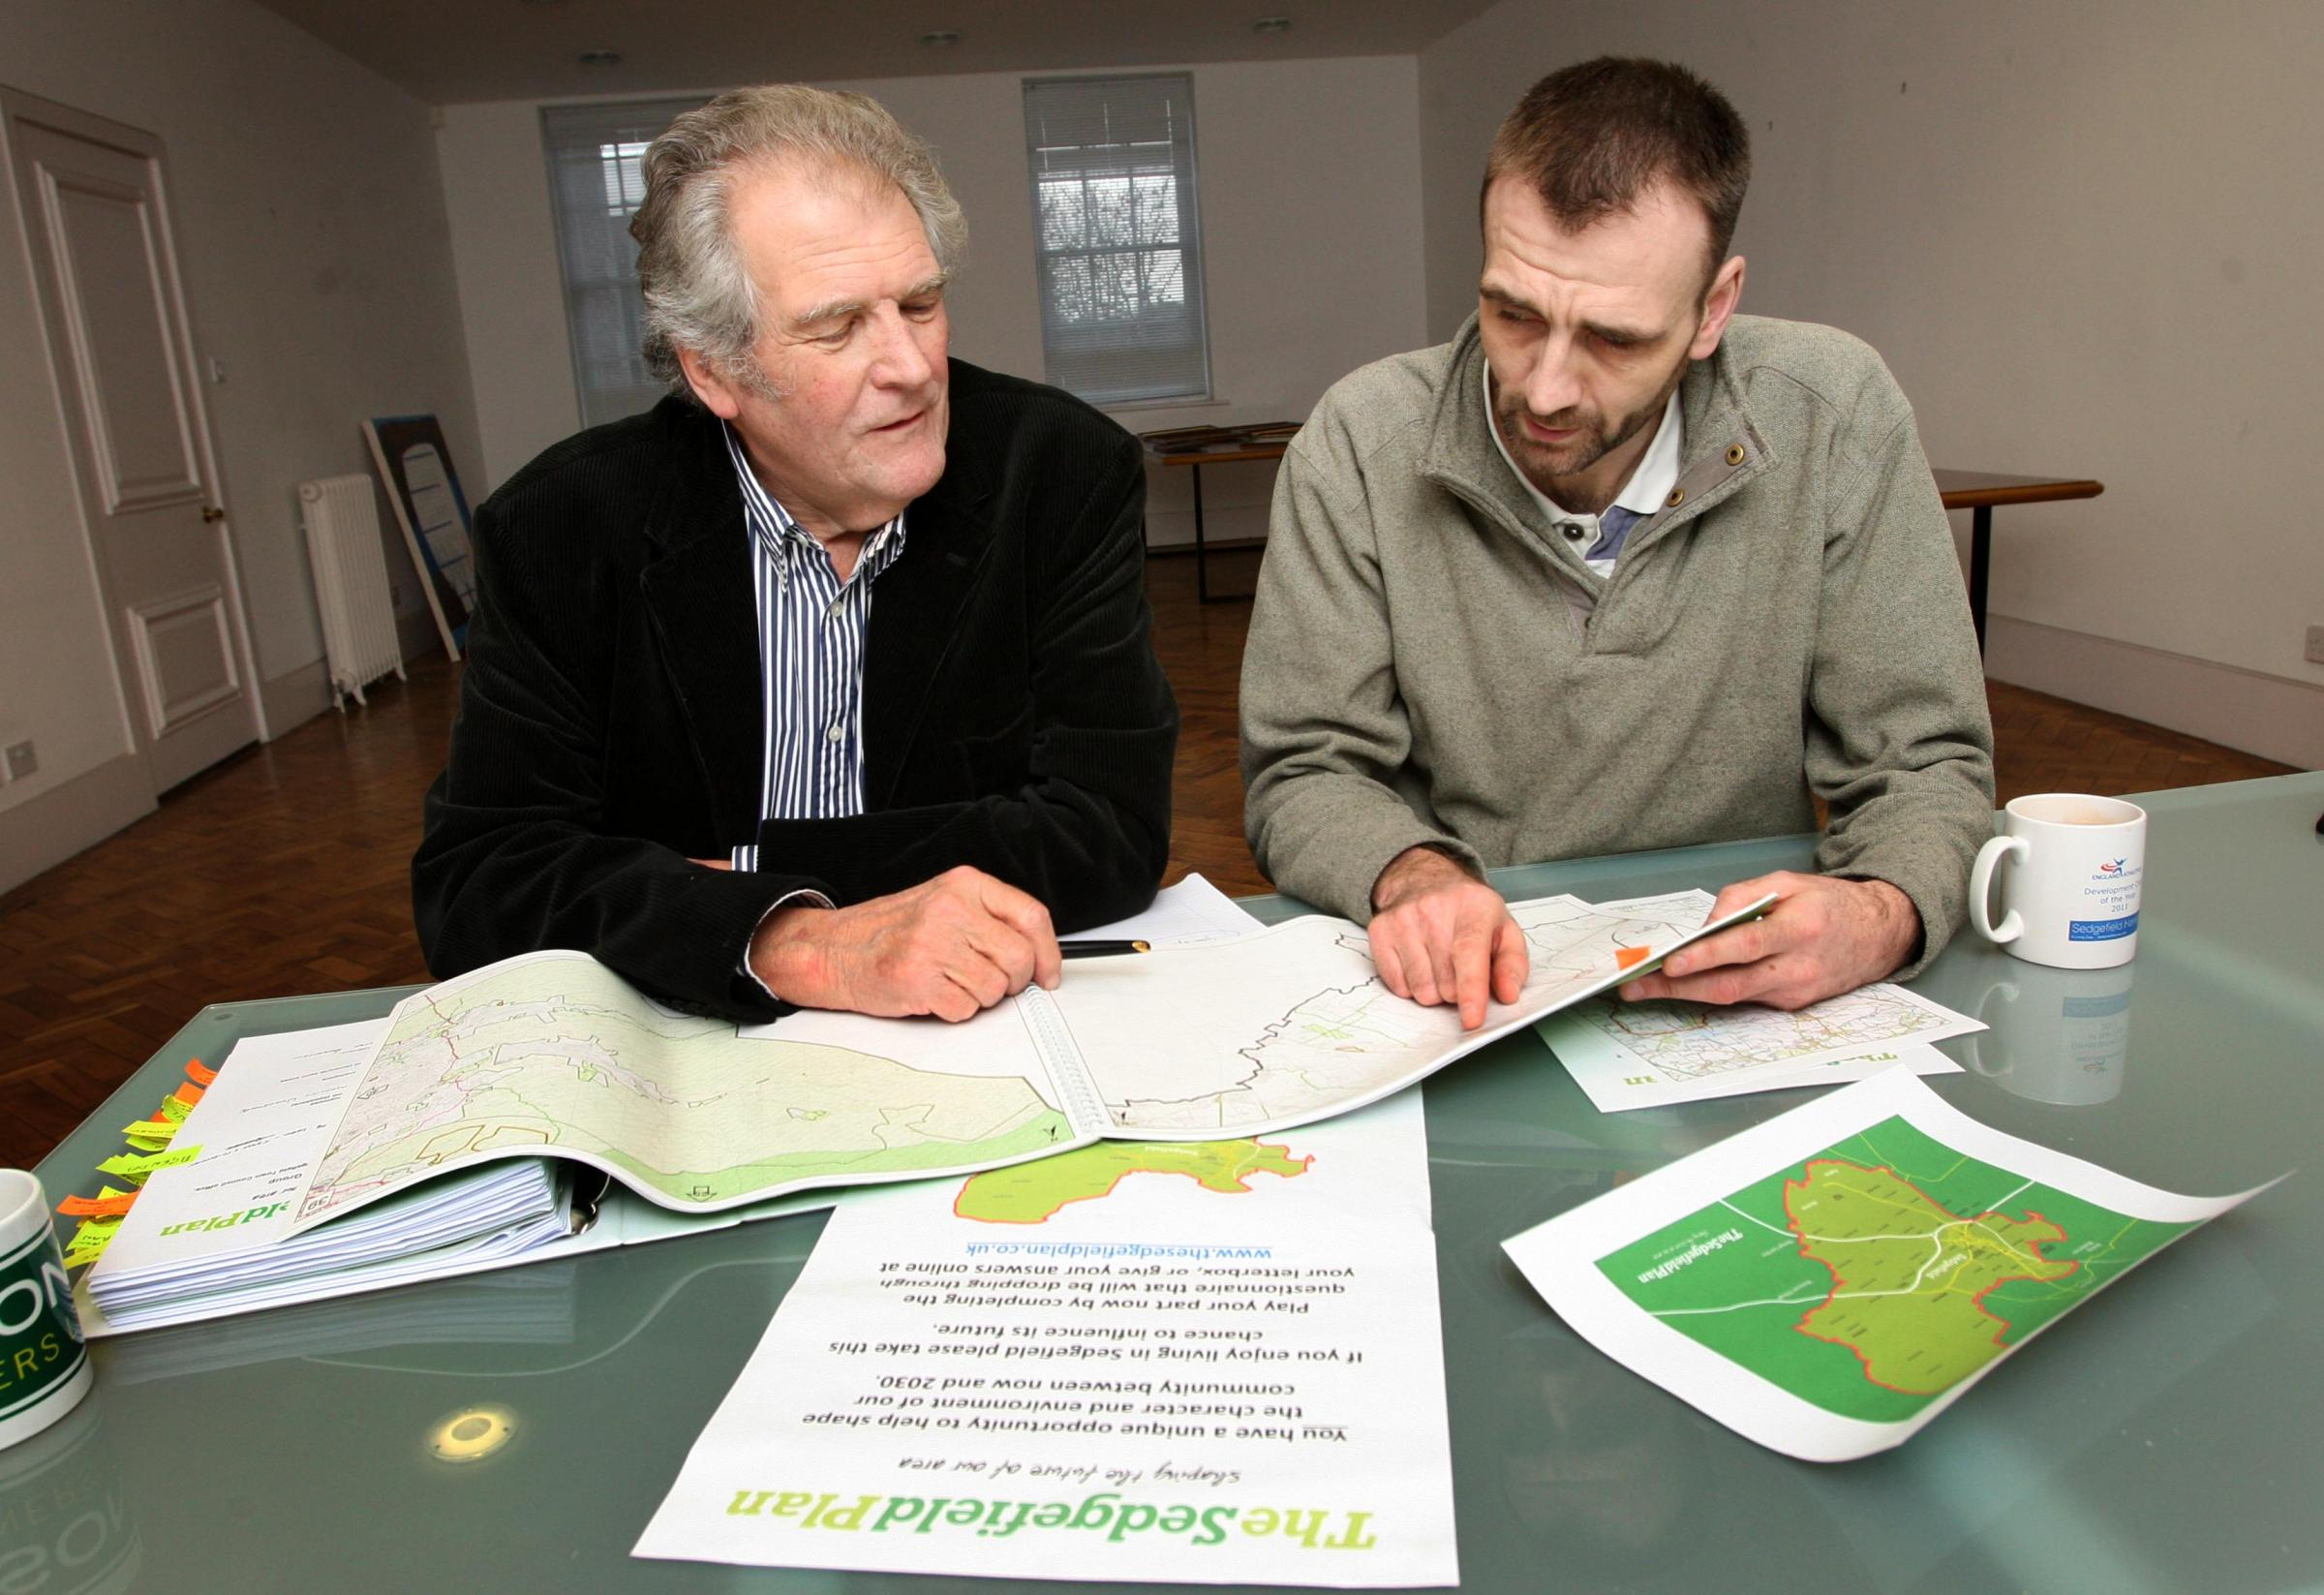 Business man David Bowles (l) and Chris Lines (r) look over the plans for the Sedgefield Plan